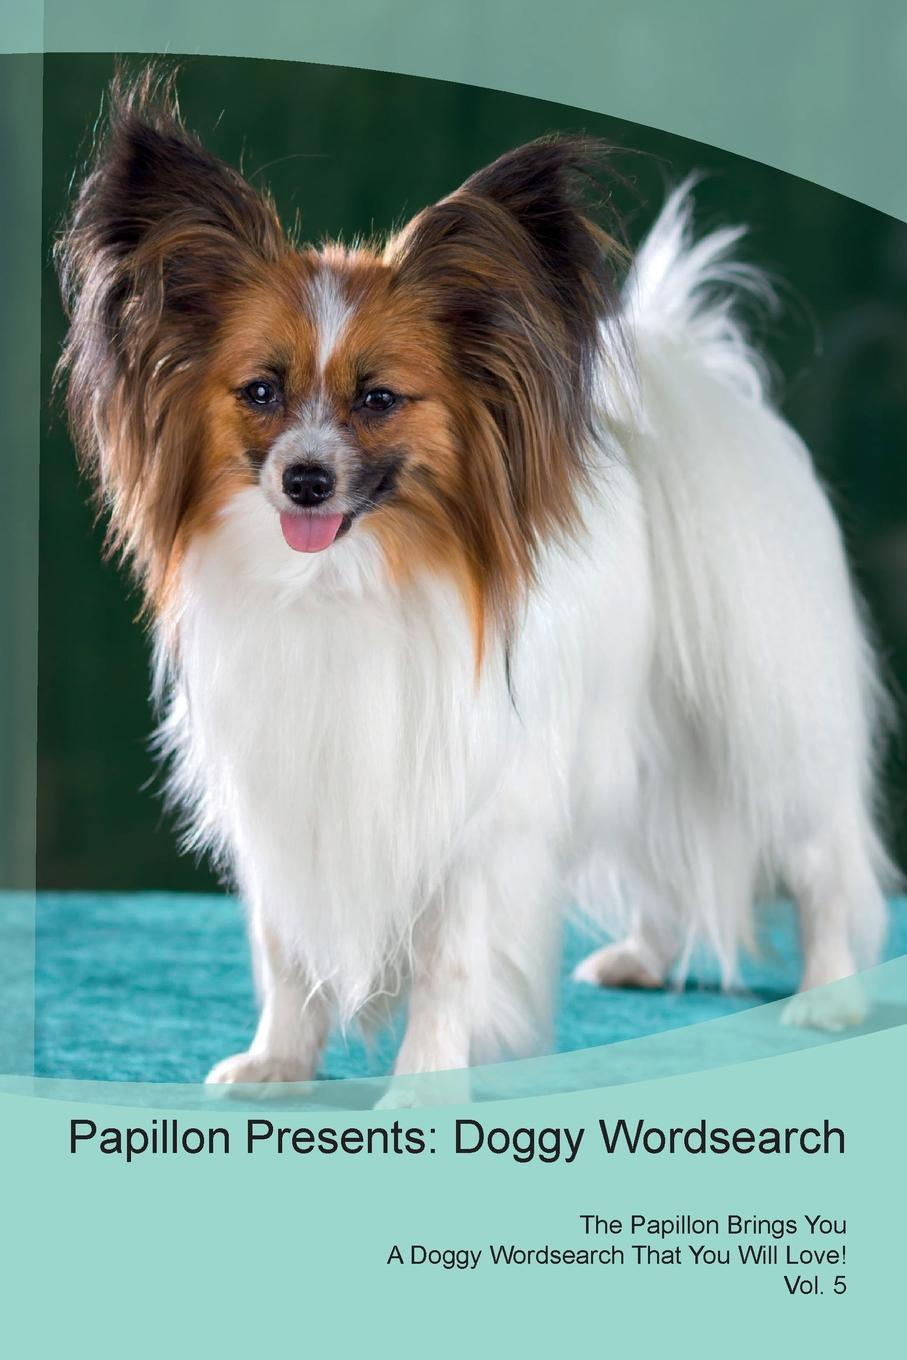 Doggy Puzzles Papillon Presents. Wordsearch The Brings You A That Will Love! Vol. 5